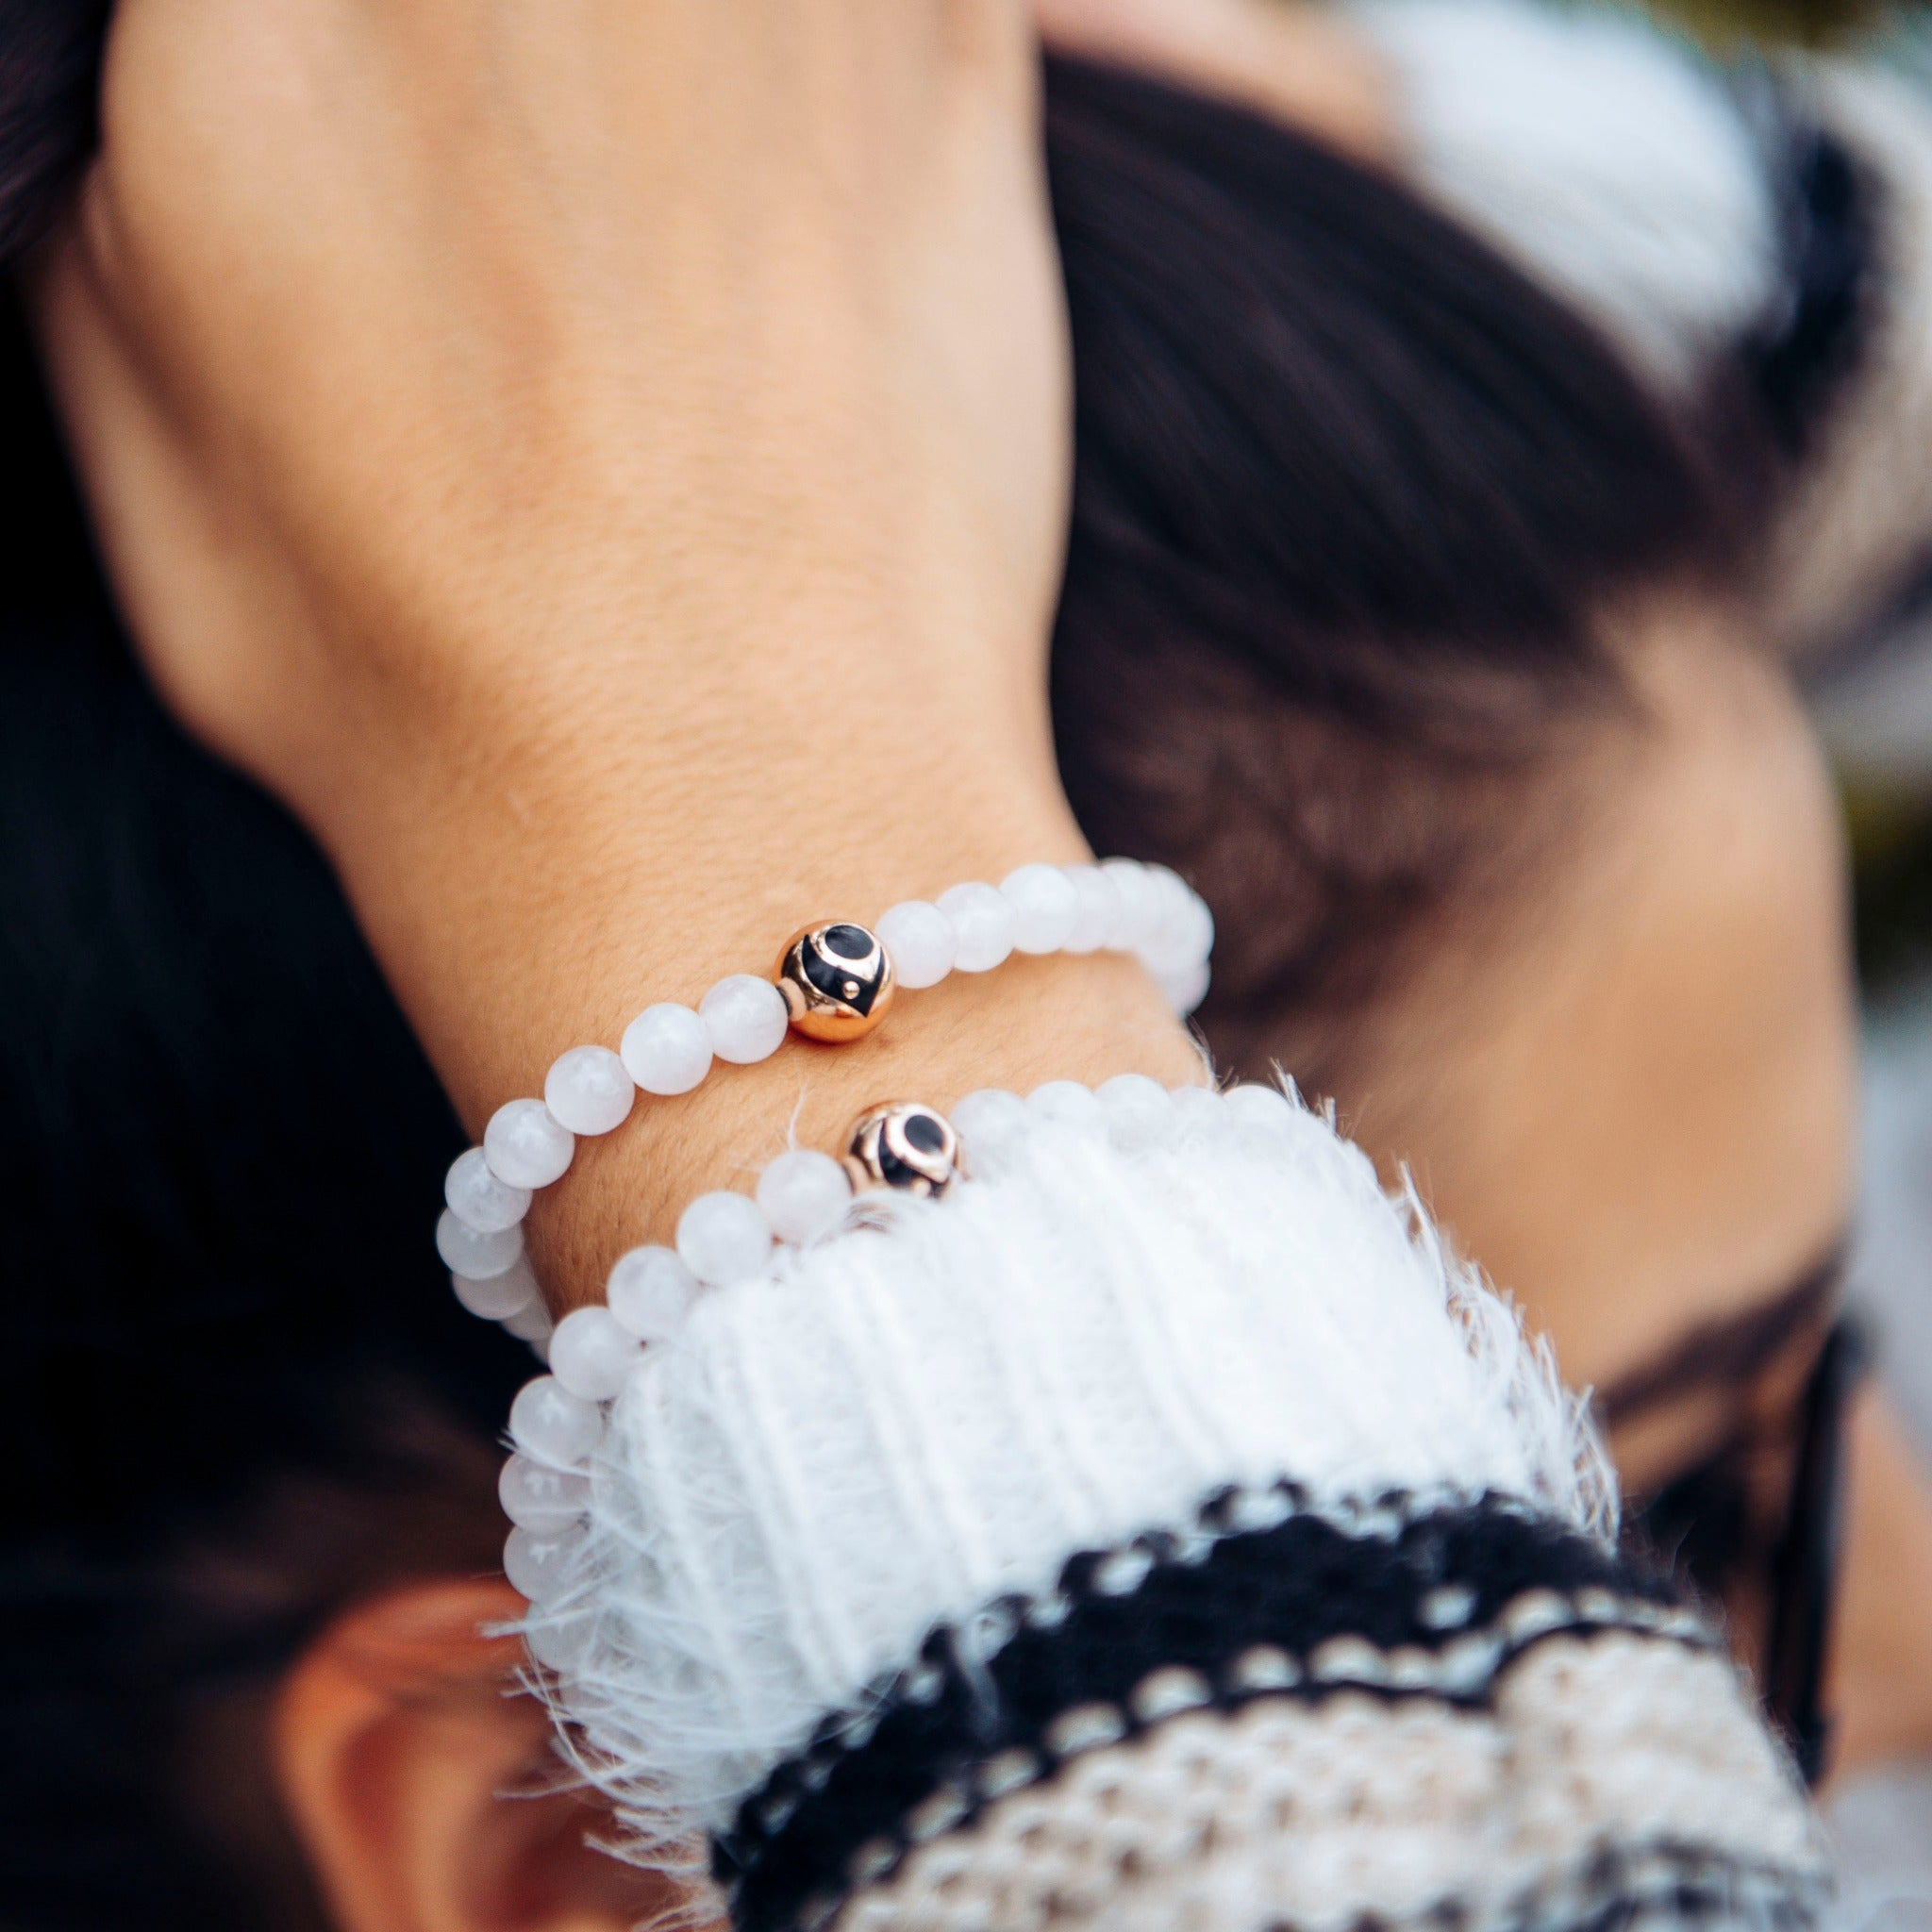 Close up of woman wearing two light pink stone bracelets on wrist while adjusting her ponytail.